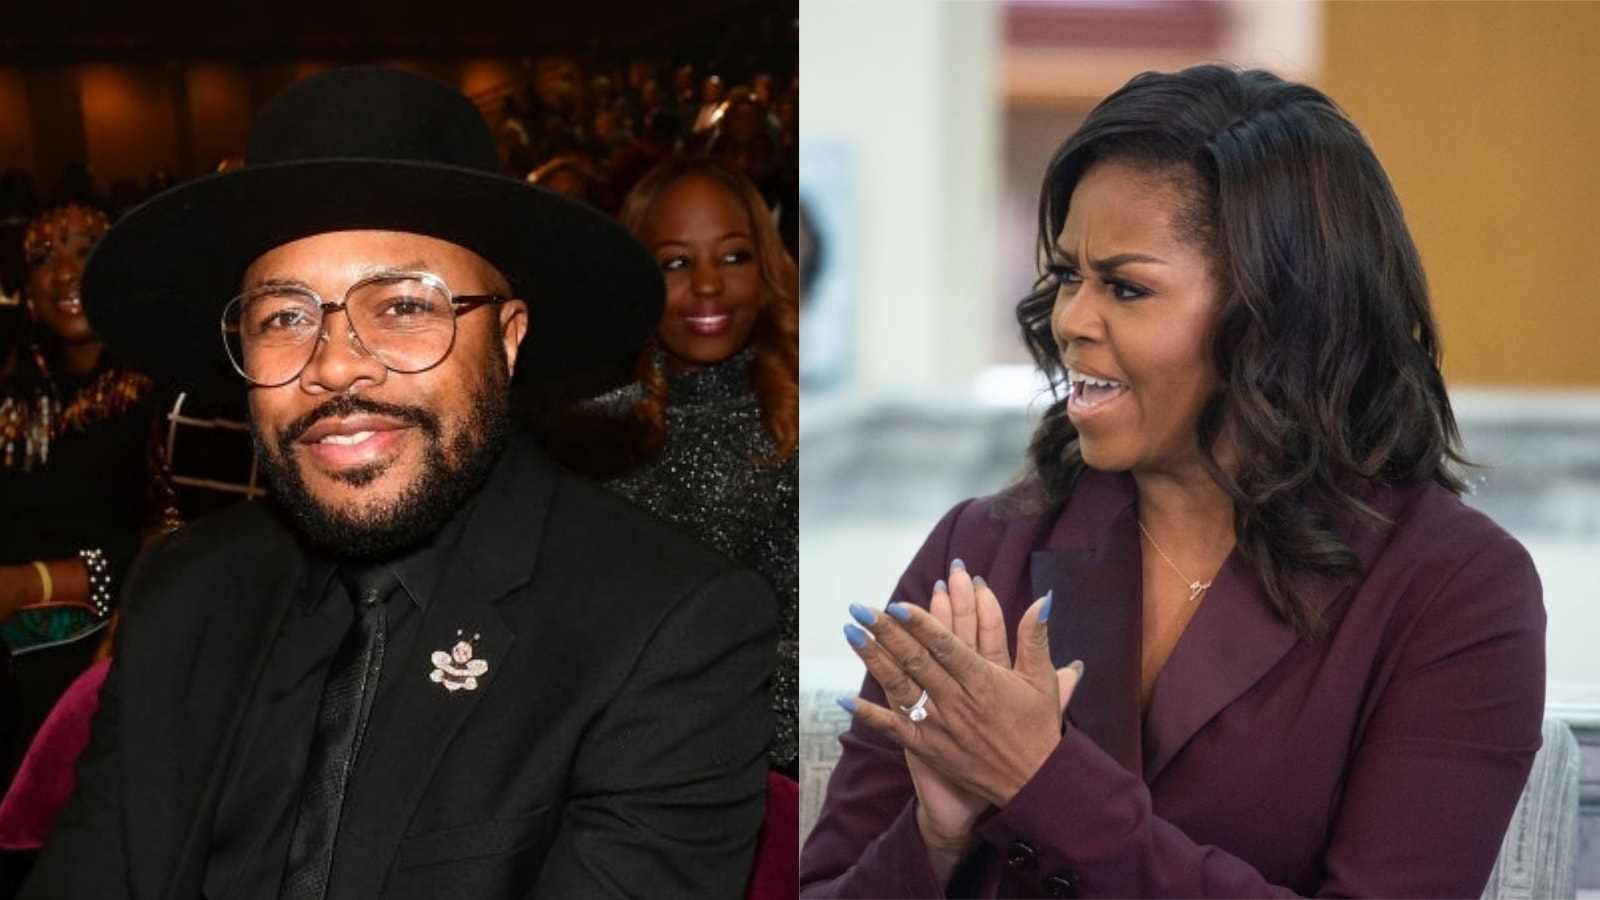 Michelle Obama Presented DJ D-Nice With The 2020 Webby Artist Of The Year Award For Club Quarantine